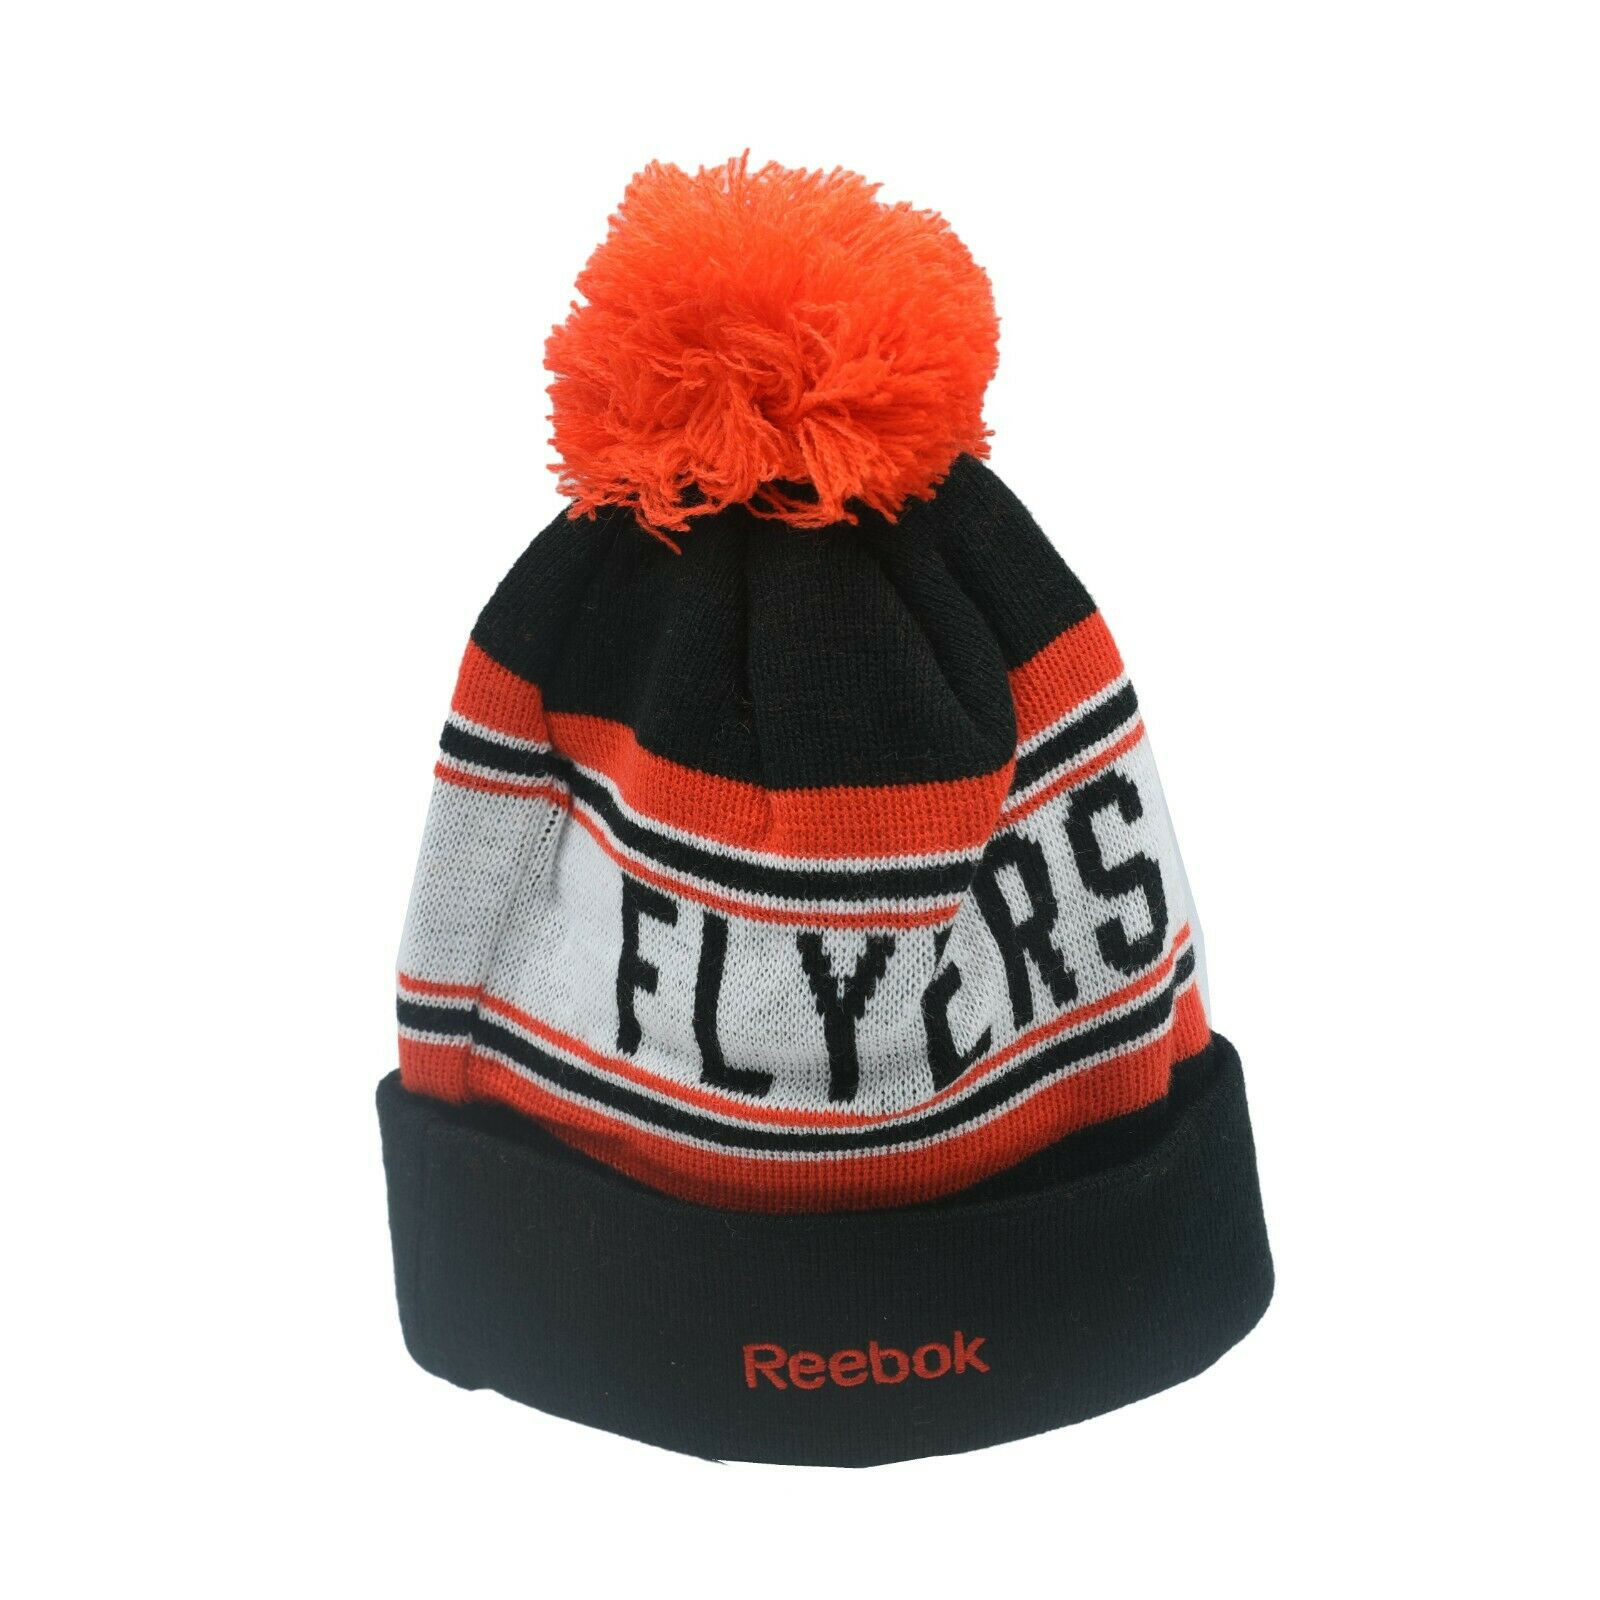 0048dee756c Philadelphia Flyers NHL Reebok Youth Boys (8-20) Cuffed Pom Knit Winter  Beanie